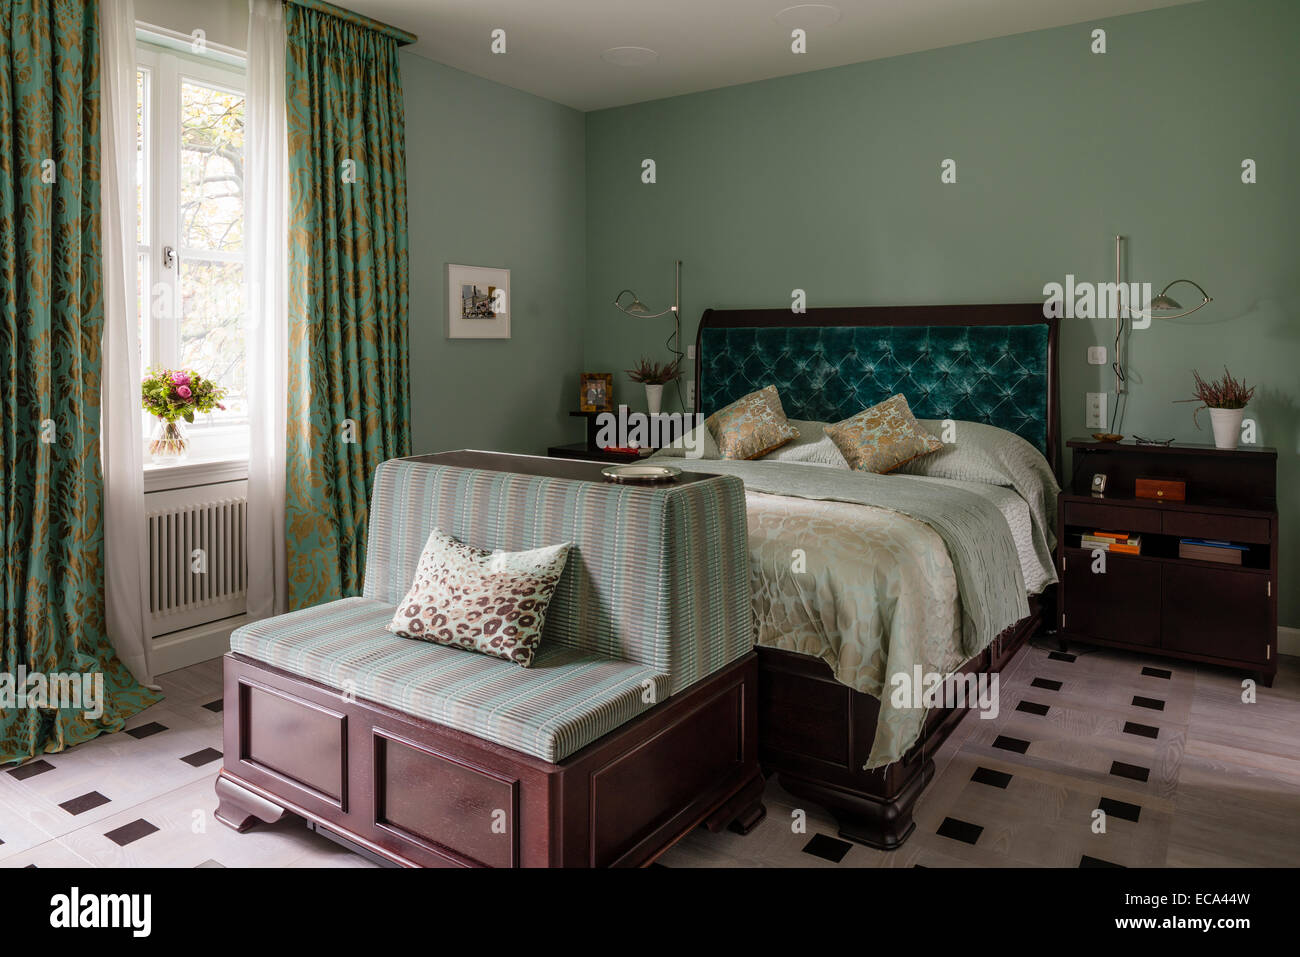 Aquamarine velvet buttoned headboard on bed in bedroom with green and gold print curtains - Stock Image